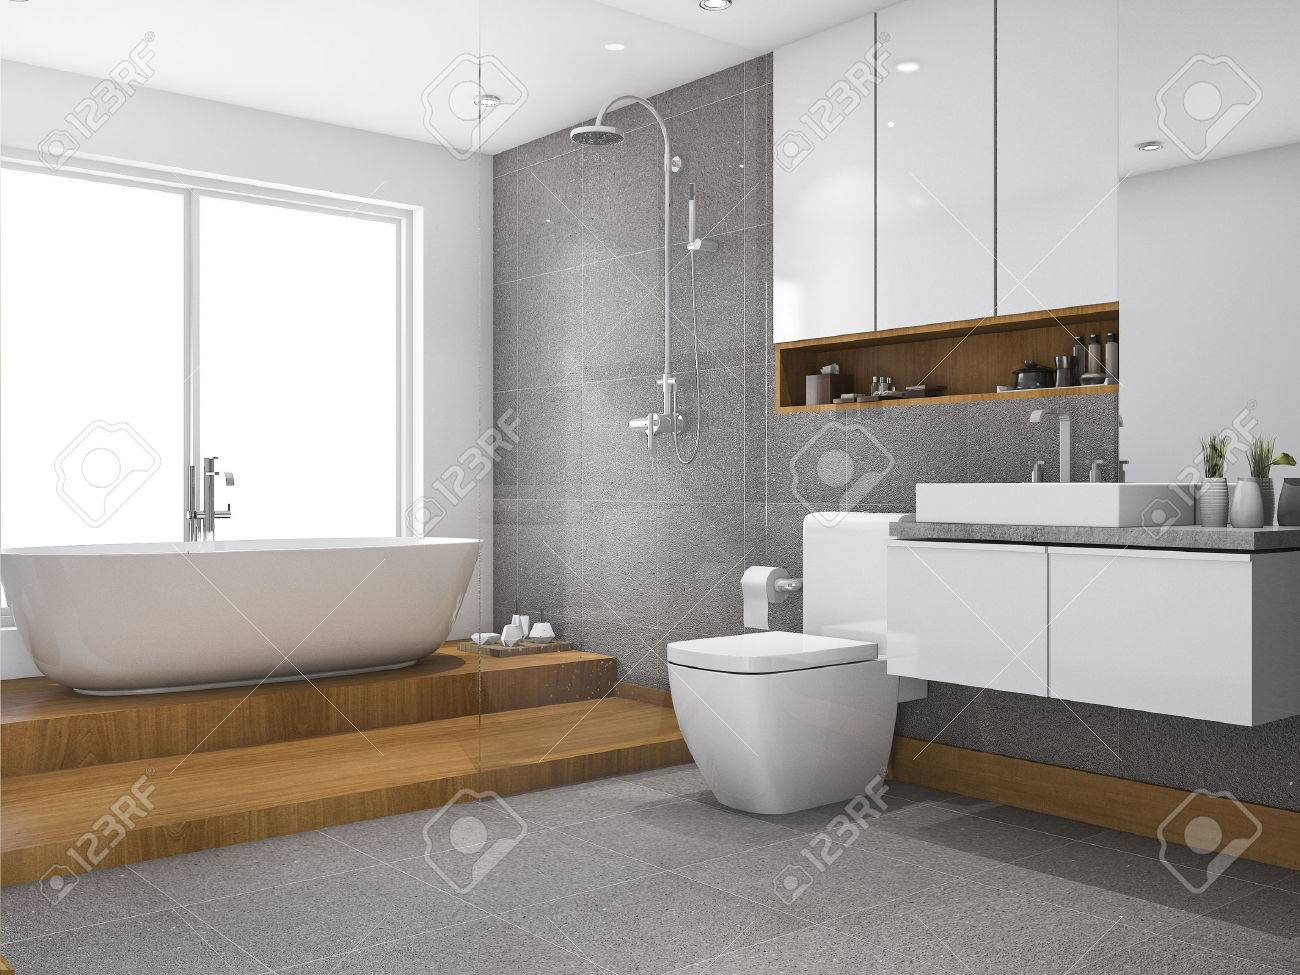 3d Rendering Wood Step Bathroom And Toilet Near Window Stock Photo ...